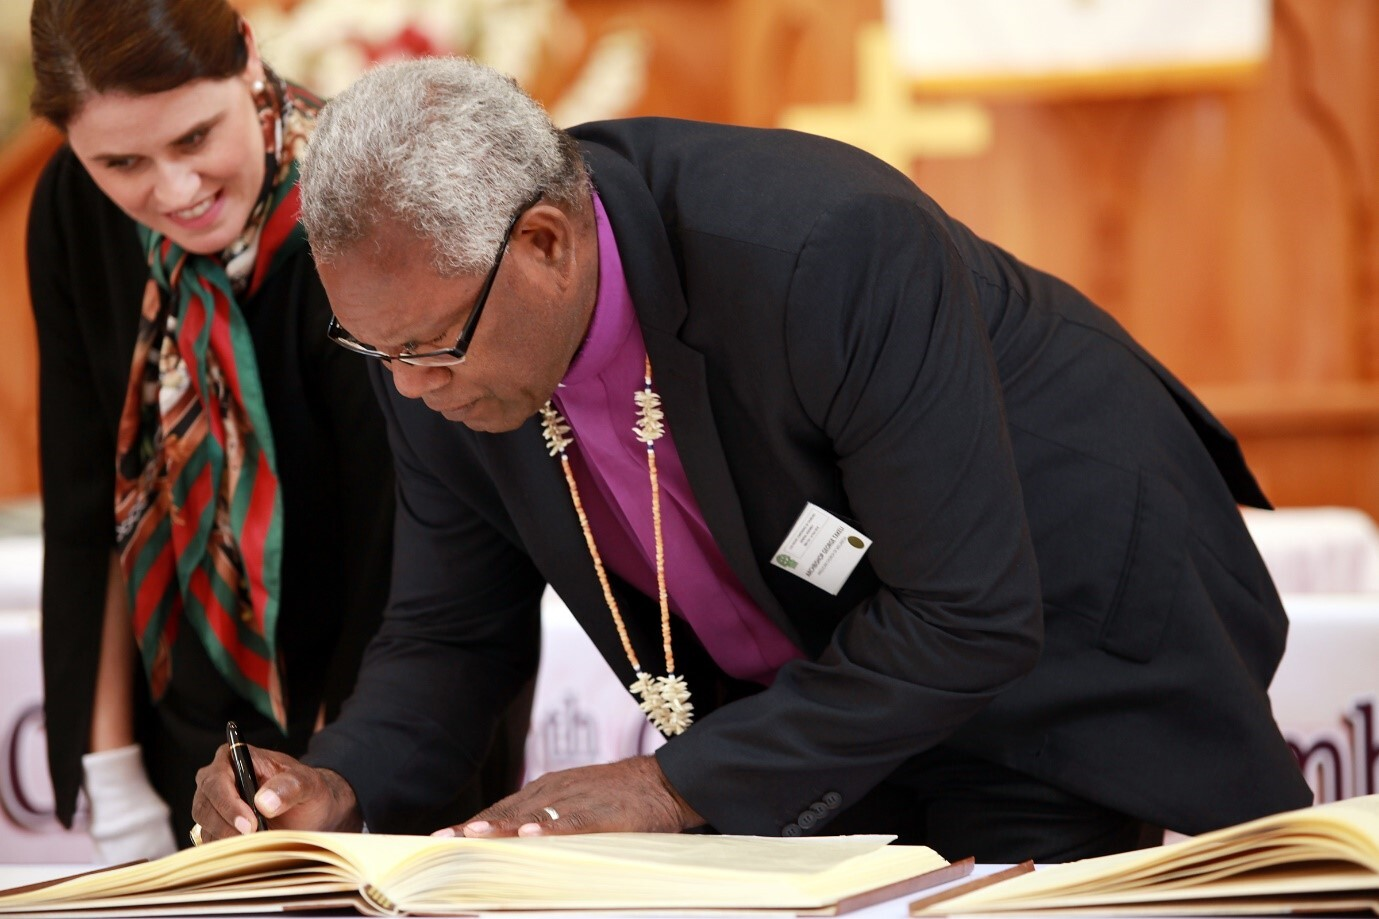 Signing Joint Declaration of Religious Leaders Against Modern Slavery